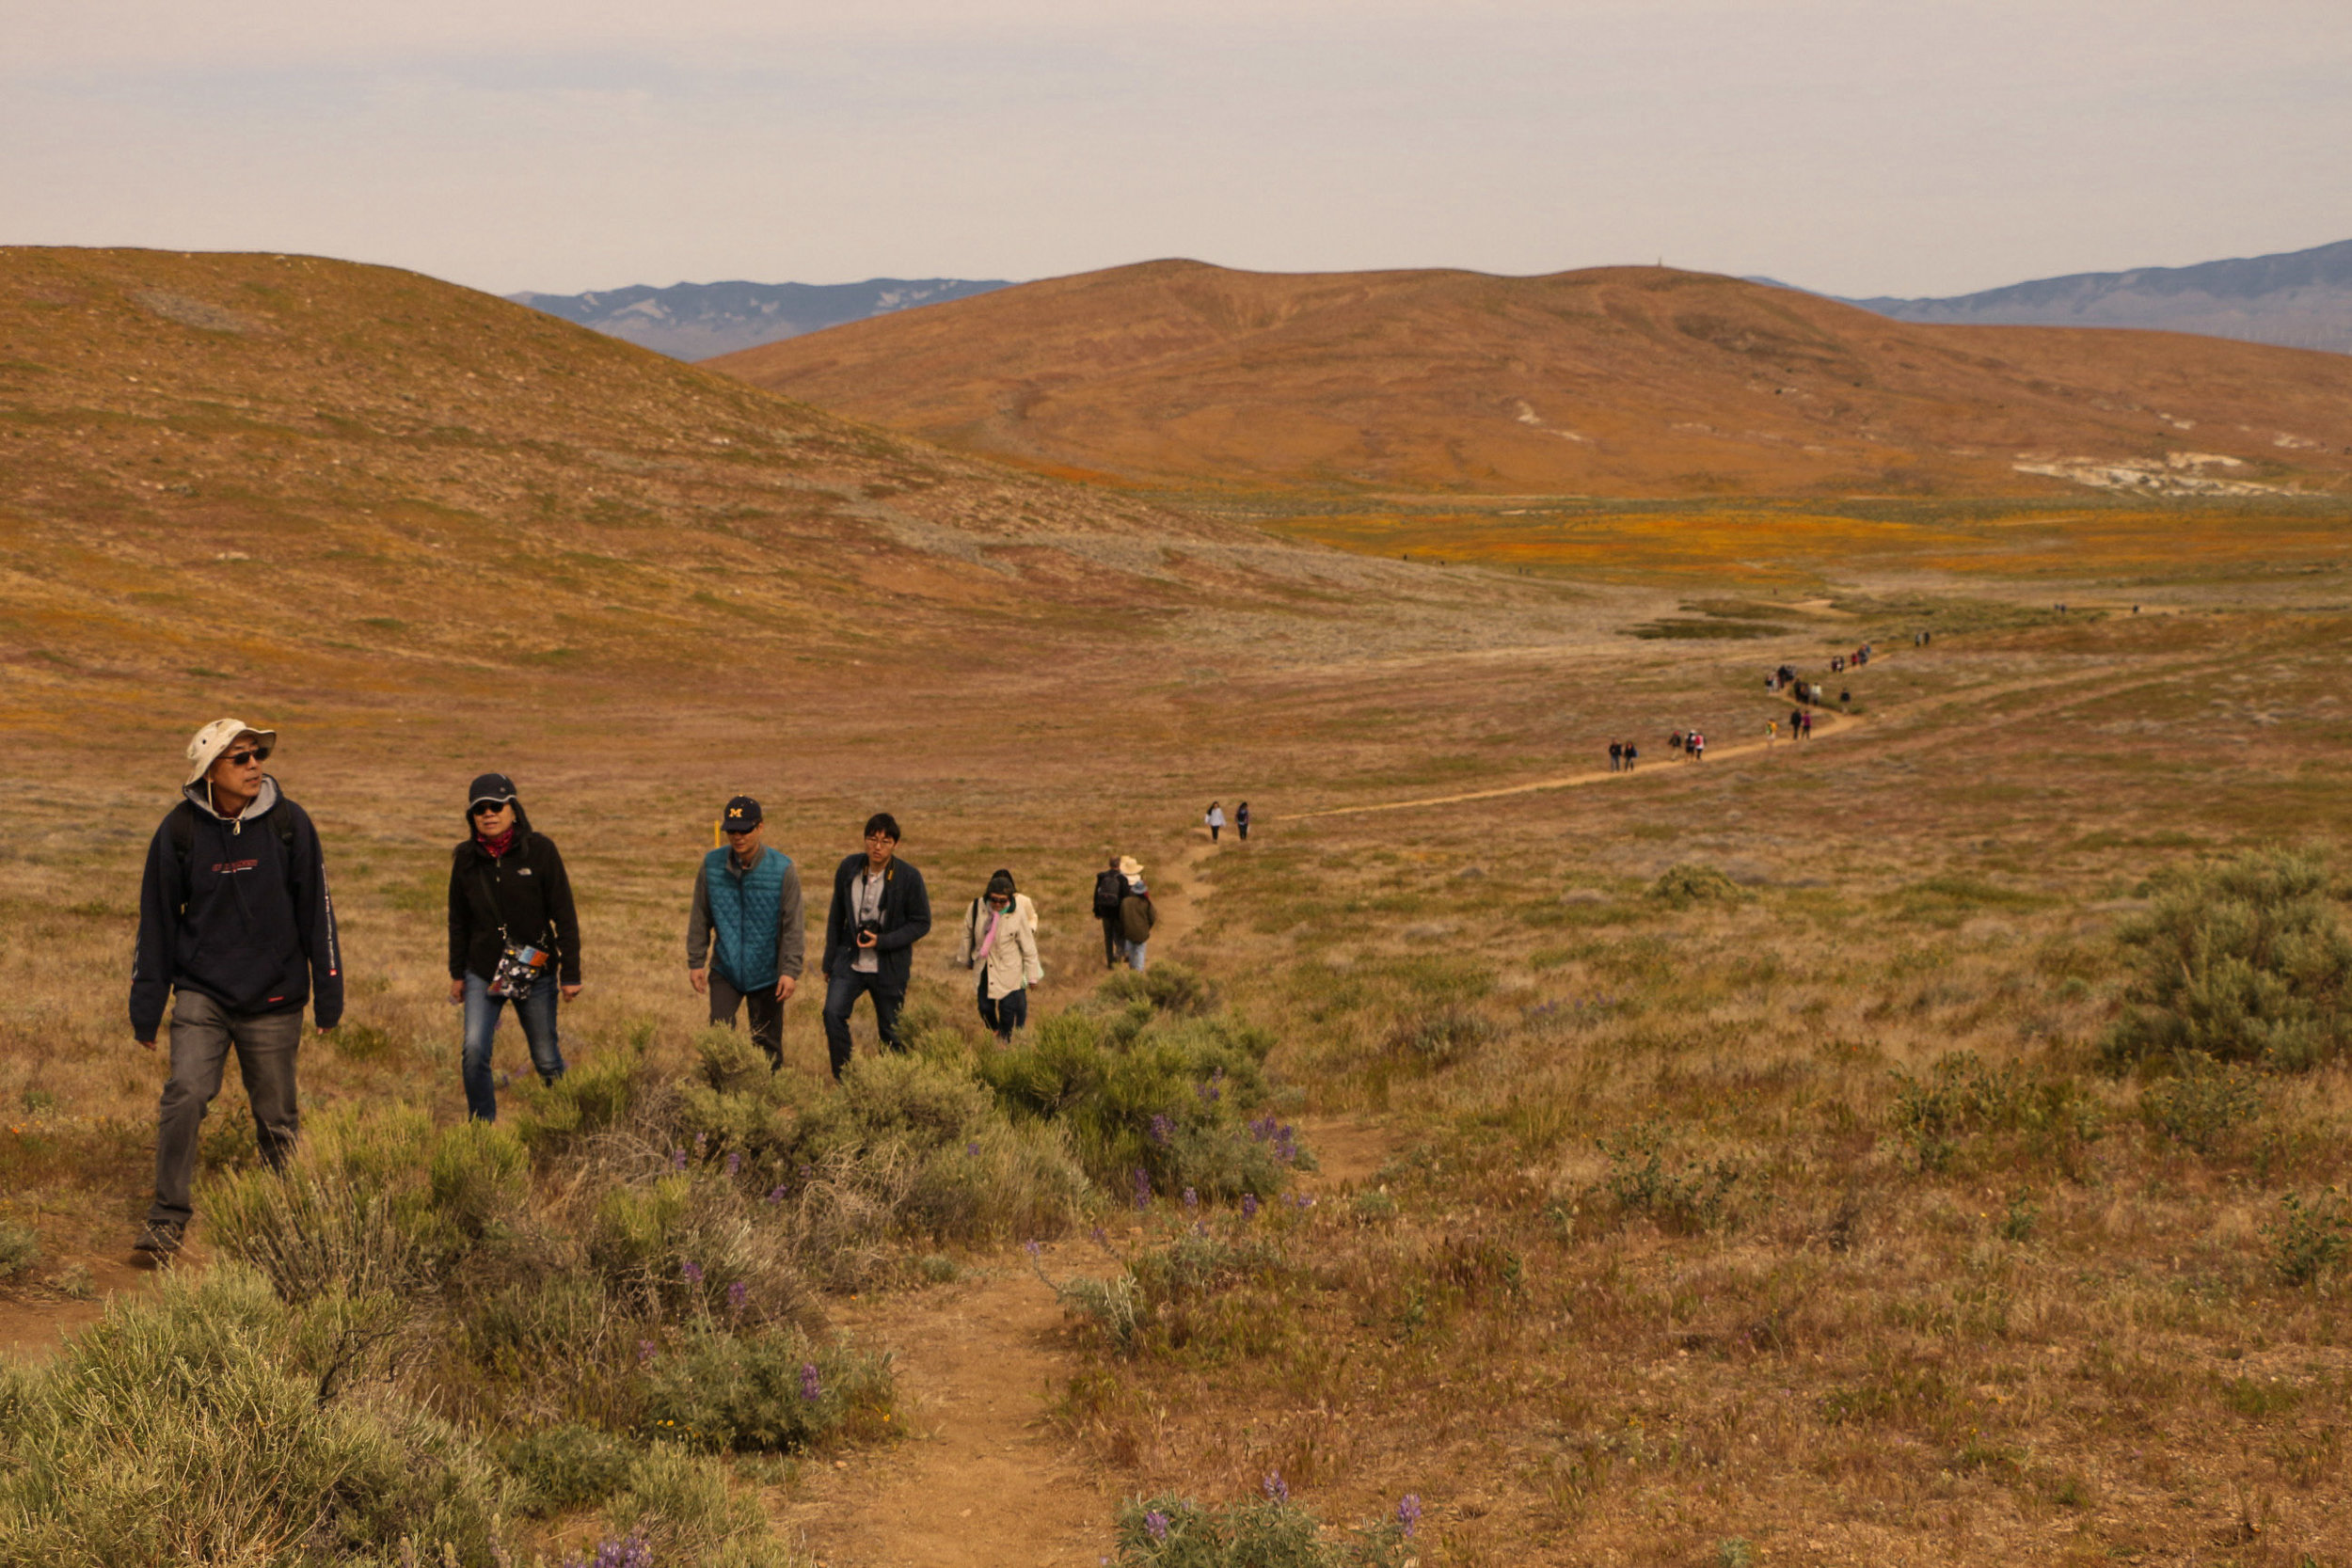 Visitors at the Antelope Valley Reserve hike their way to the poppy fields, hoping to catch a glimpse of the super bloom before it fades away due to lack of rain in the Antelope Valley California on April 8, 2017. Jose Aguila